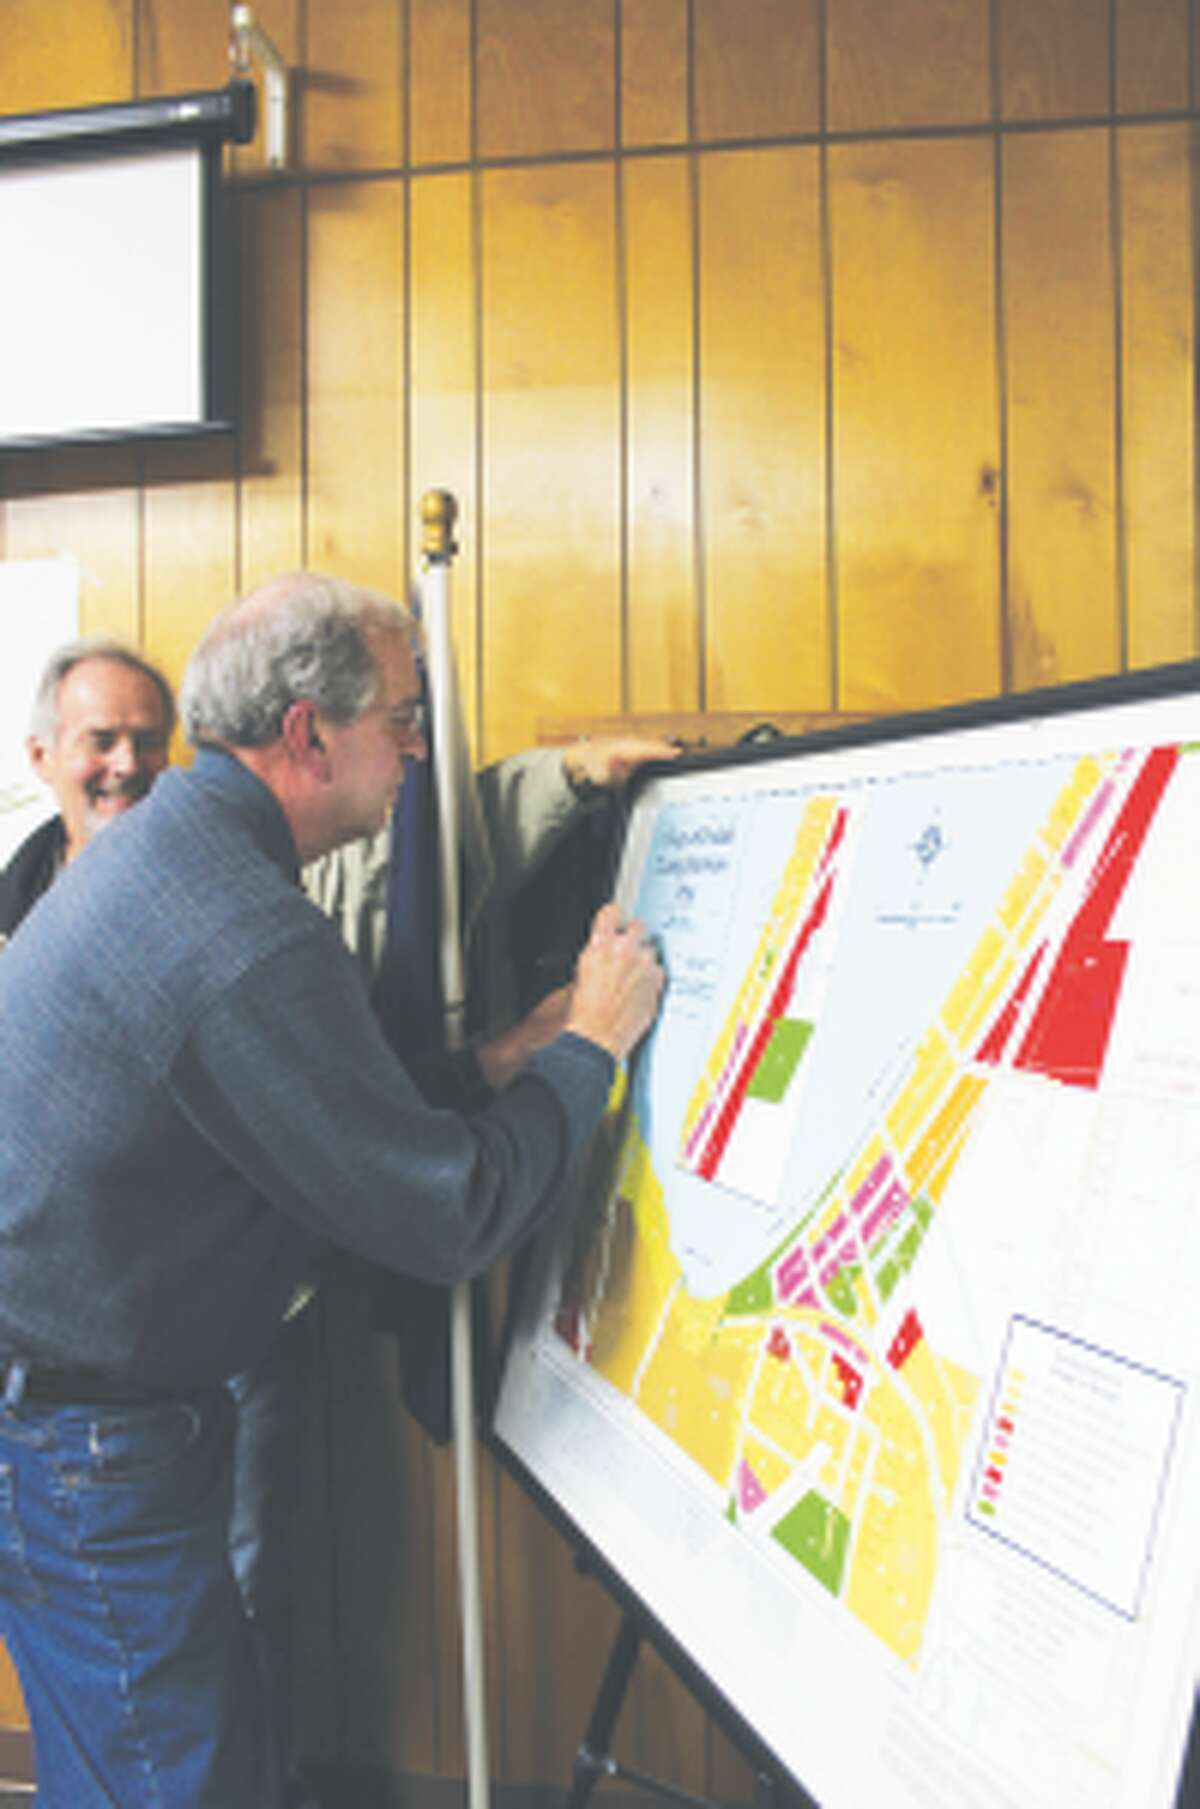 New Zoning: Ronald Edwards, zoning administrator for the Village of Beulah, watches as Councilman Don Hook signs the new zoning map, which was approved by the council after several public hearings held on the changes. Most of the changes involved errors in the original map, but 3 parcels zoned rural conservation were changed to residential 1 in order to match the parcels around them.